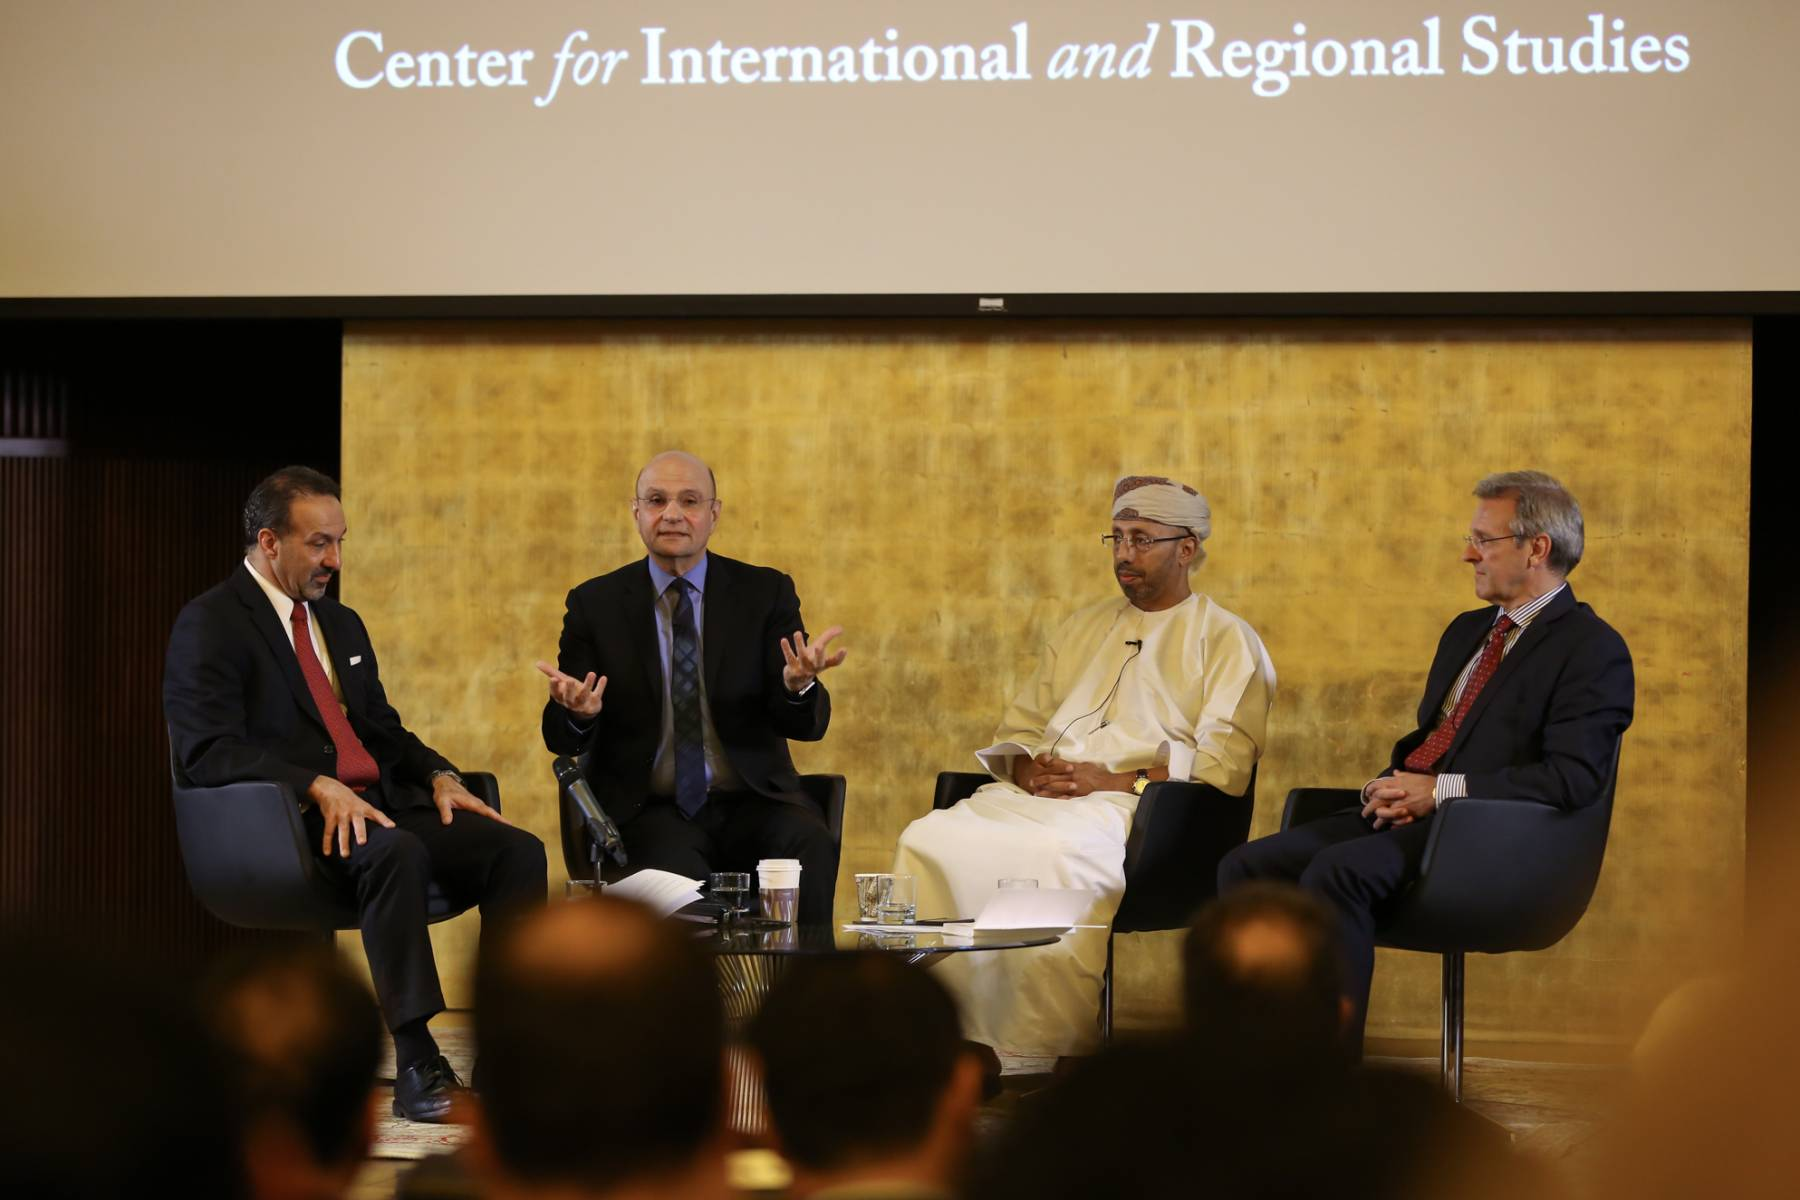 Crisis in the GCC: Causes, Consequences & Prospects